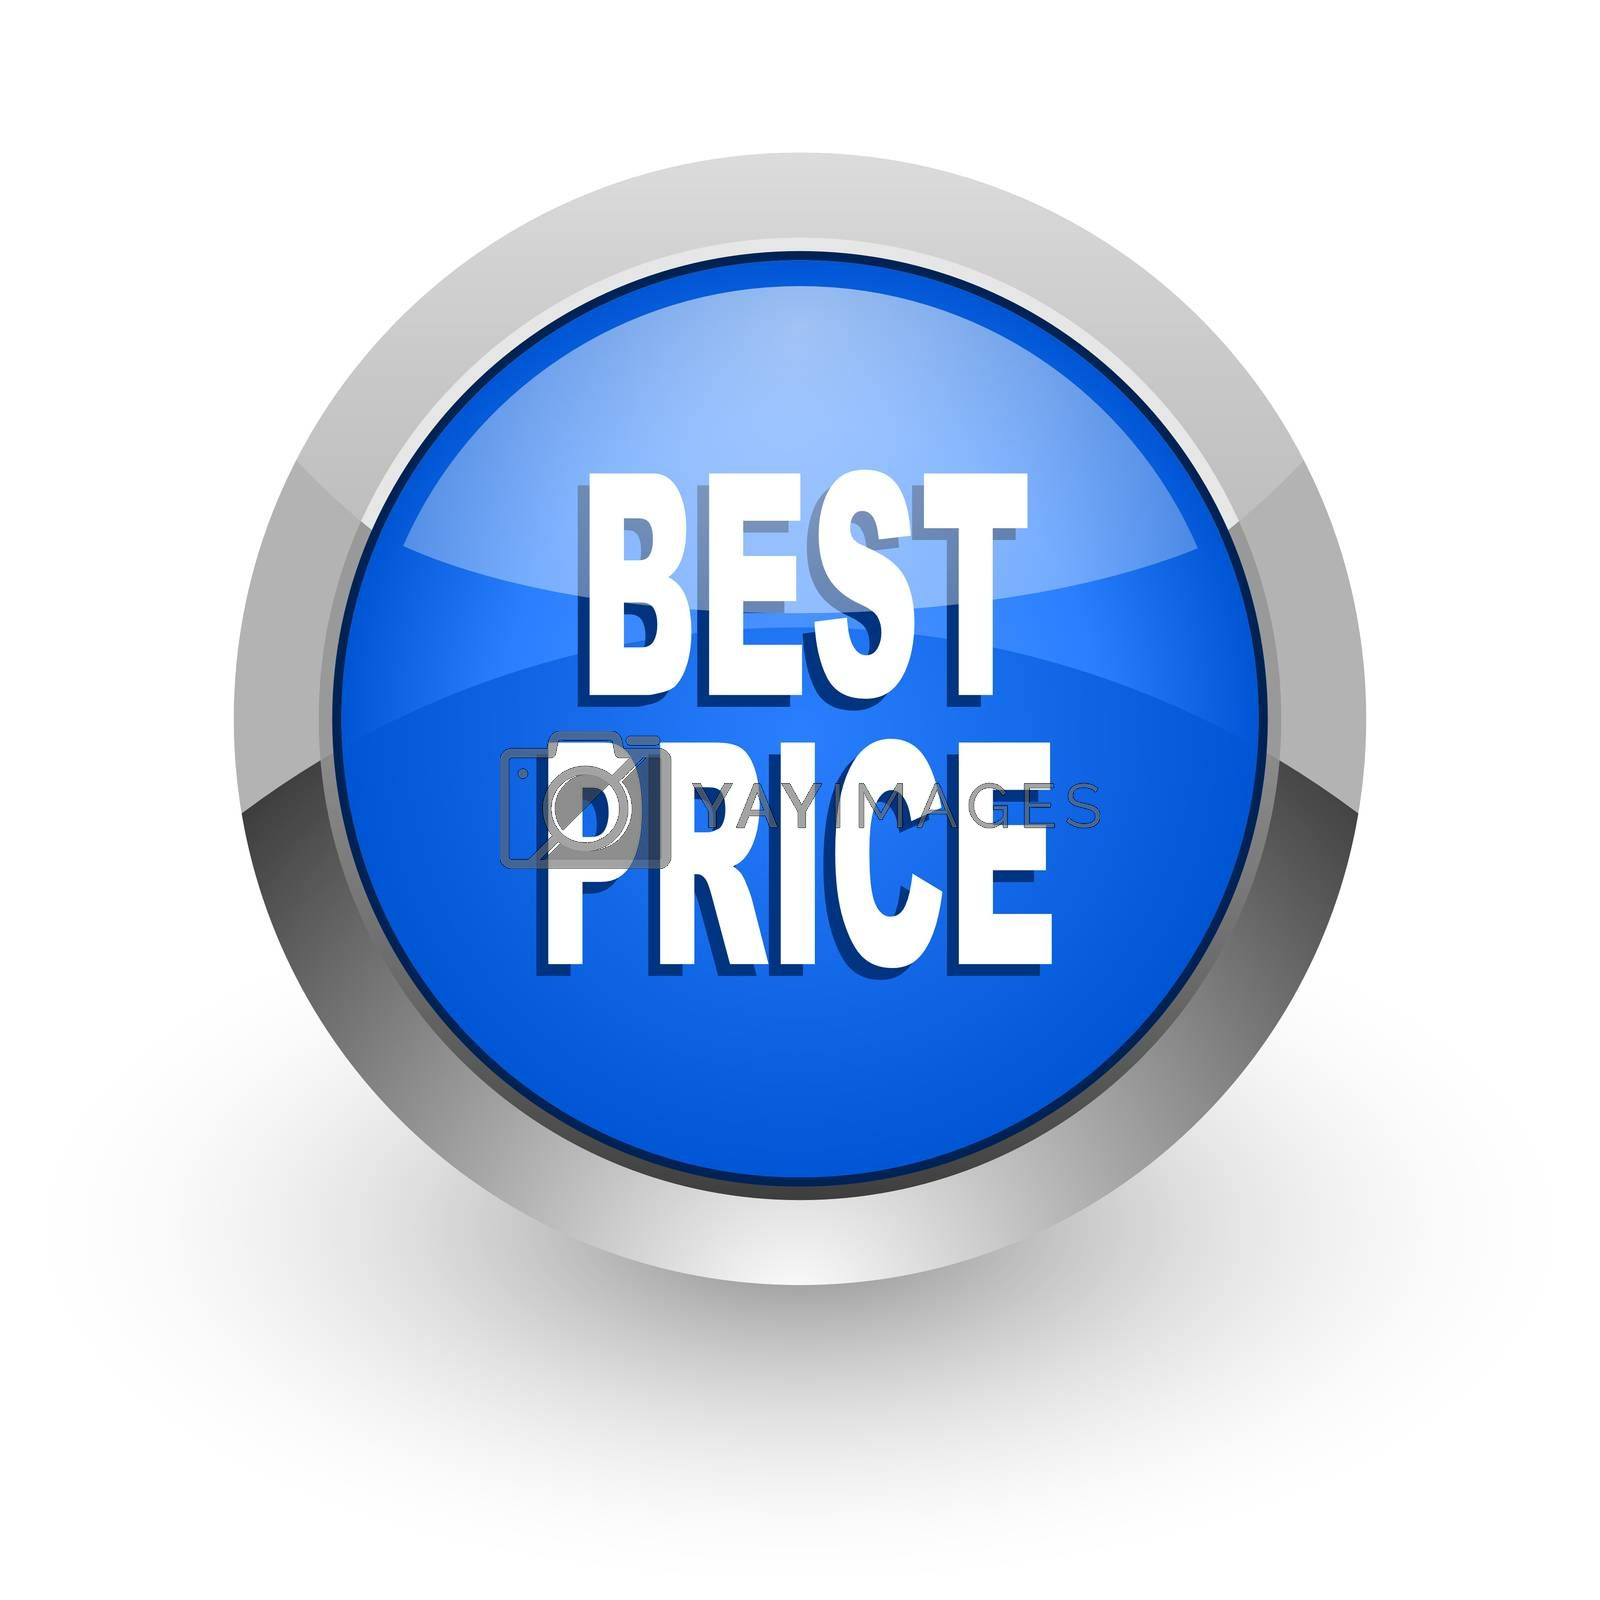 Royalty free image of best price blue glossy web icon by alexwhite